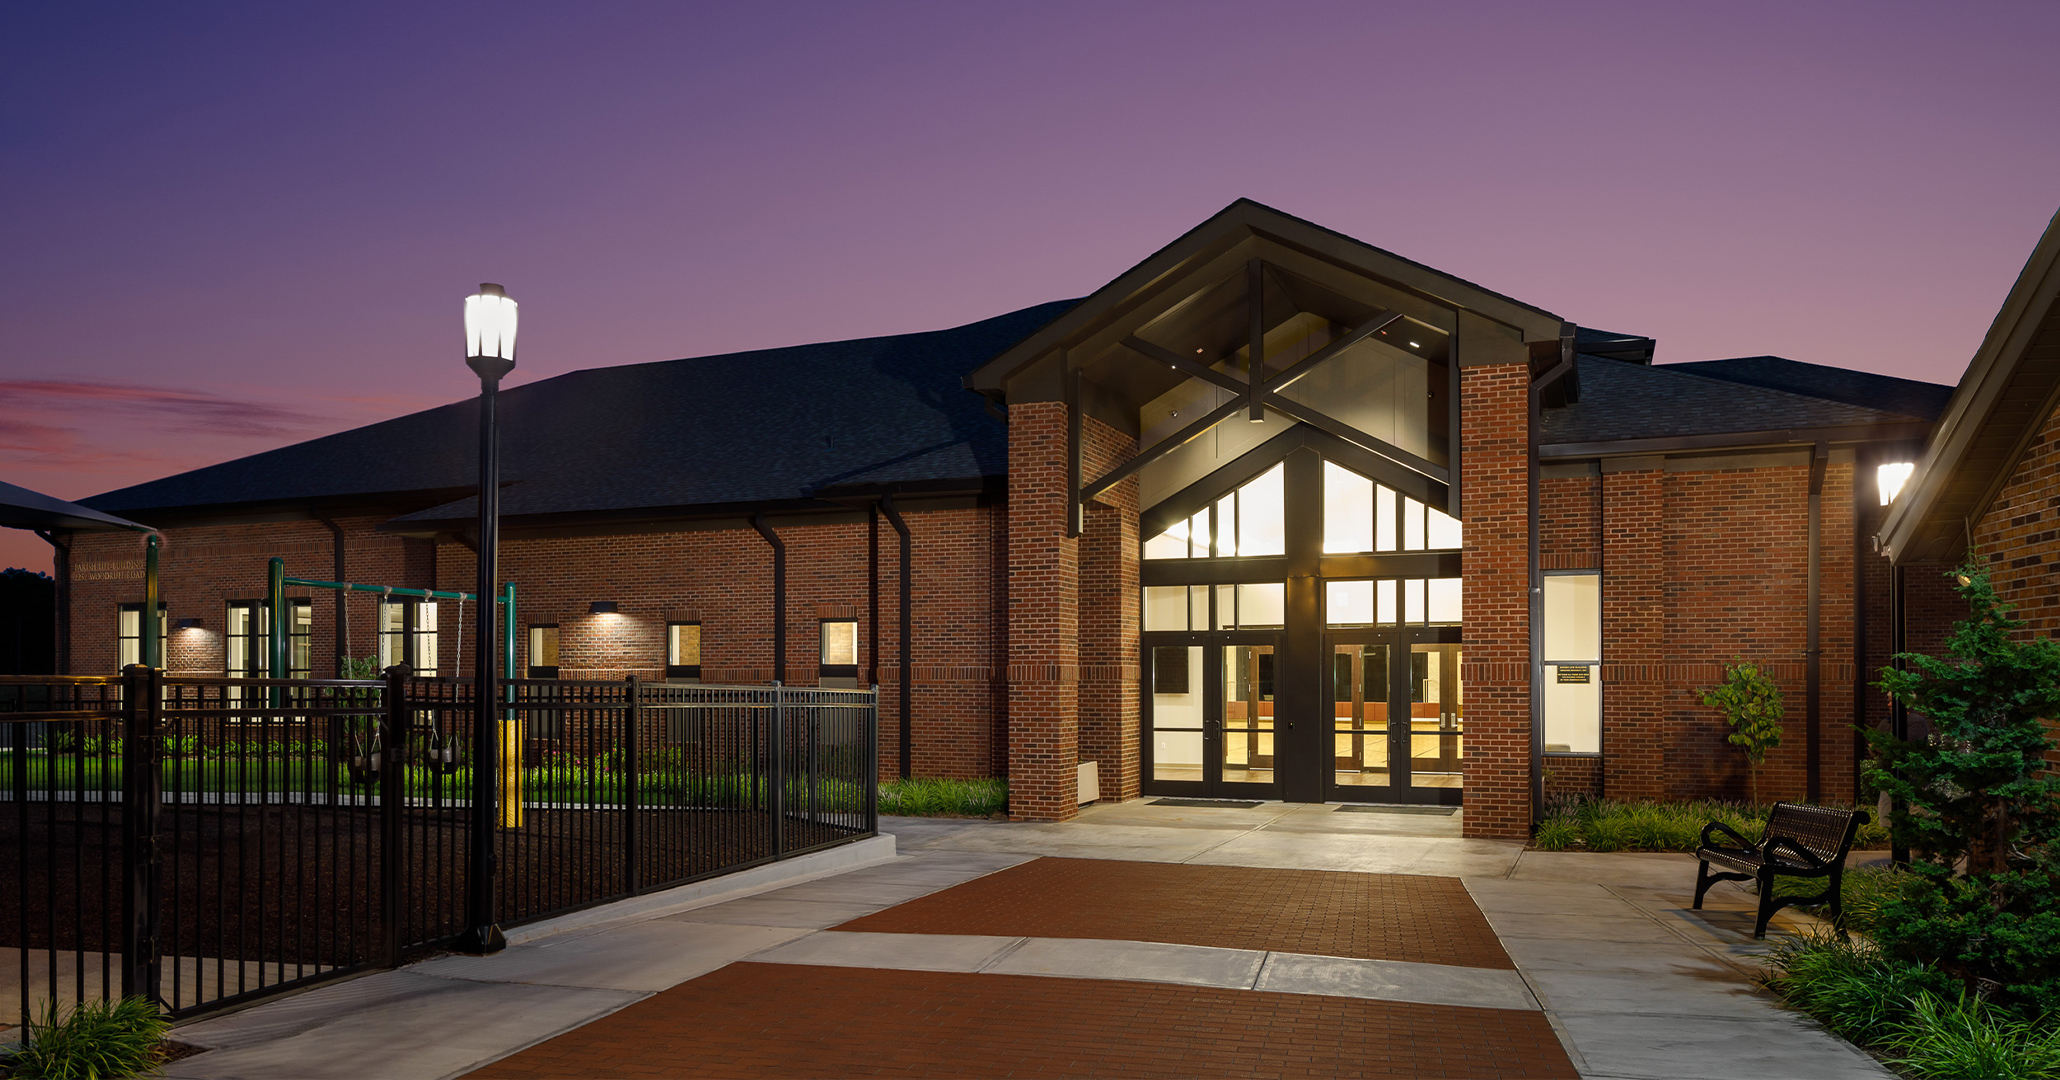 The Charleston Diocese and St Mary Magdalene Catholic Church in Simpsonville, SC is working with church architects Boudreaux to design the Parish Life Building.